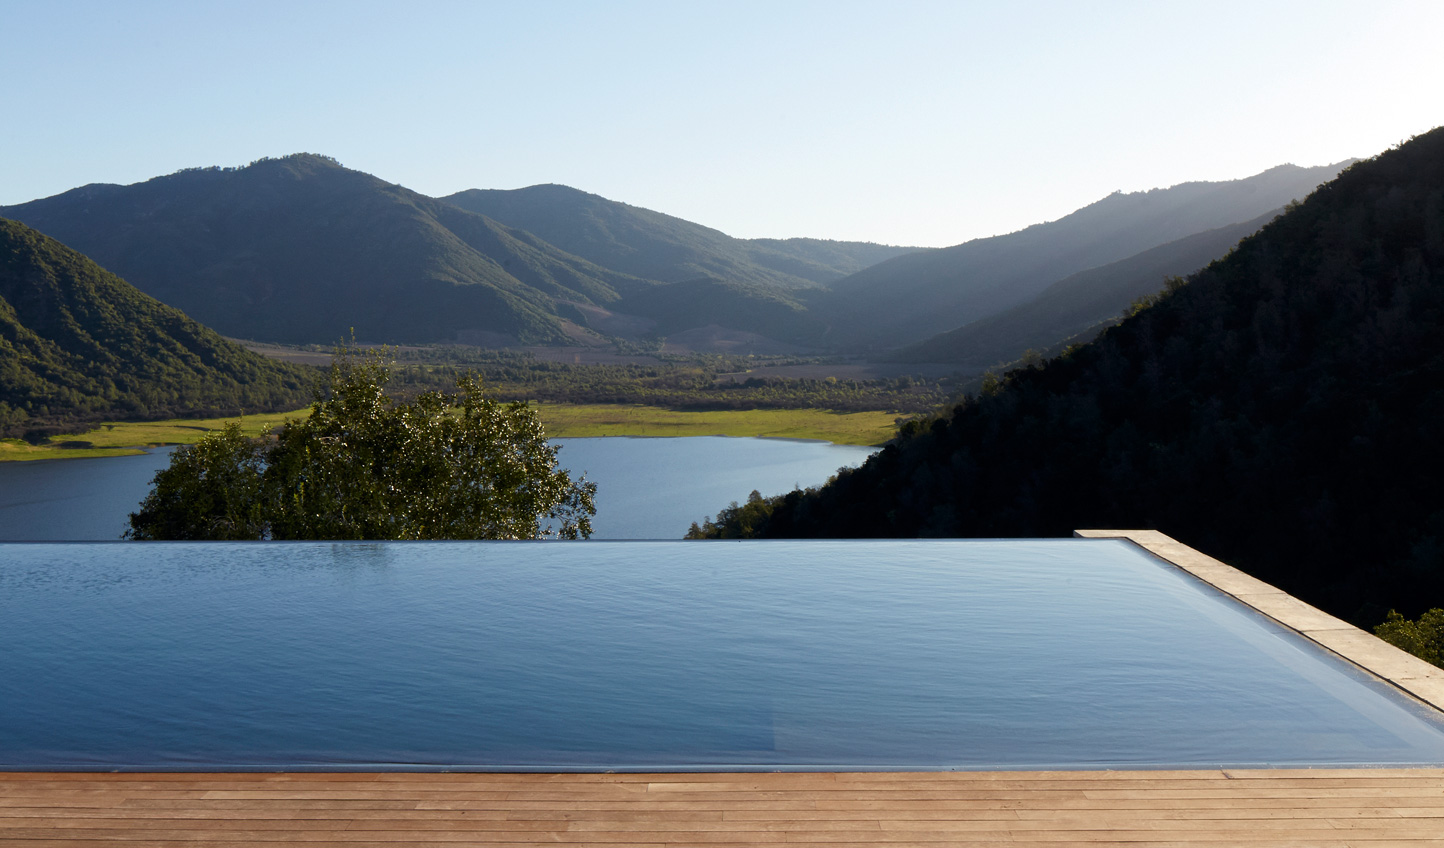 Take a dip in the gorgeous infinity pool and soak in the views